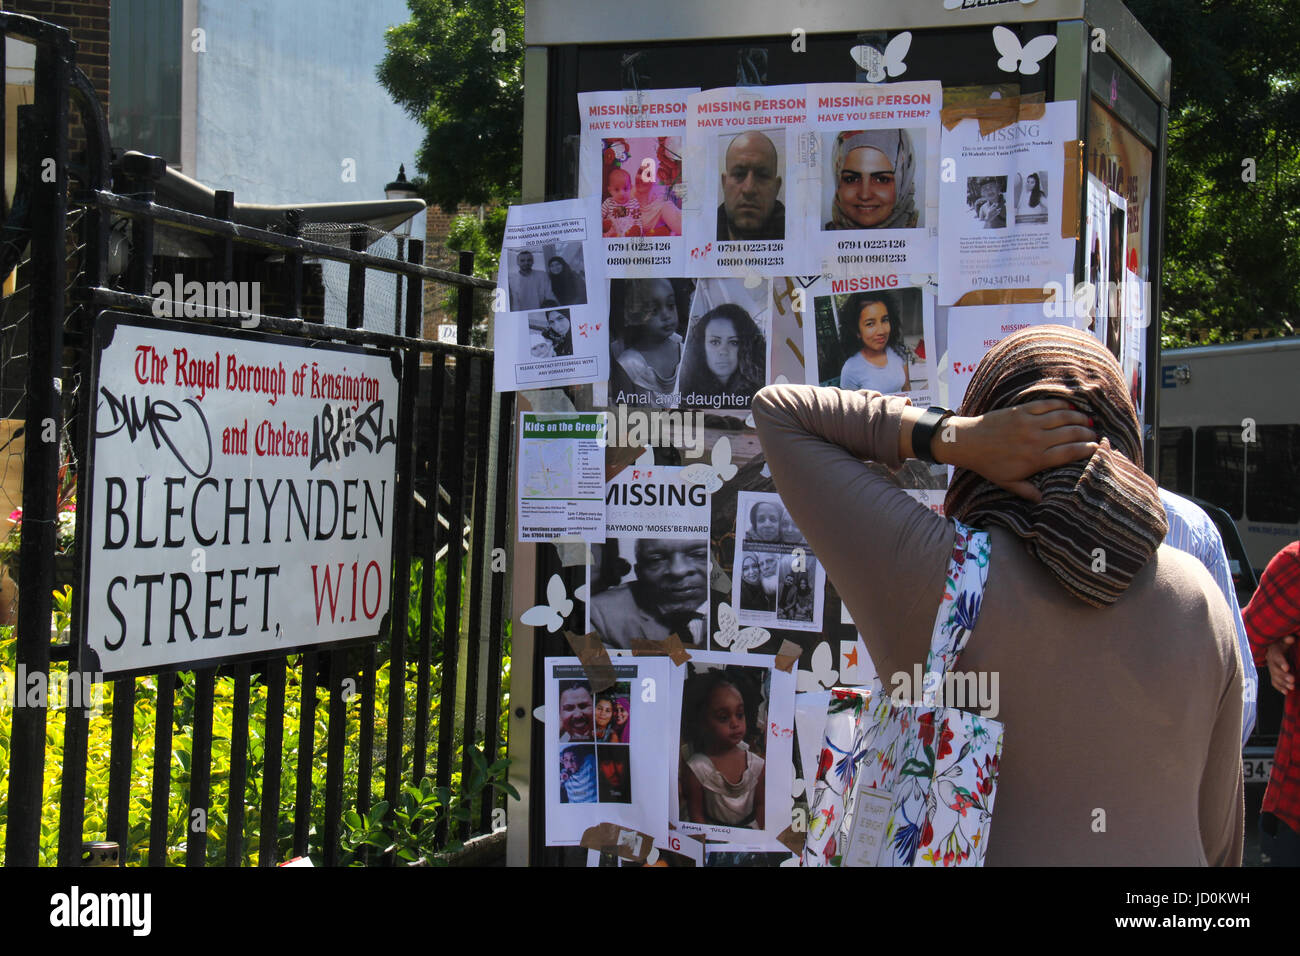 London, UK. 16th June 2017 - A woman reads through missing person posters on Blechynden Street following the Grenfell - Stock Image